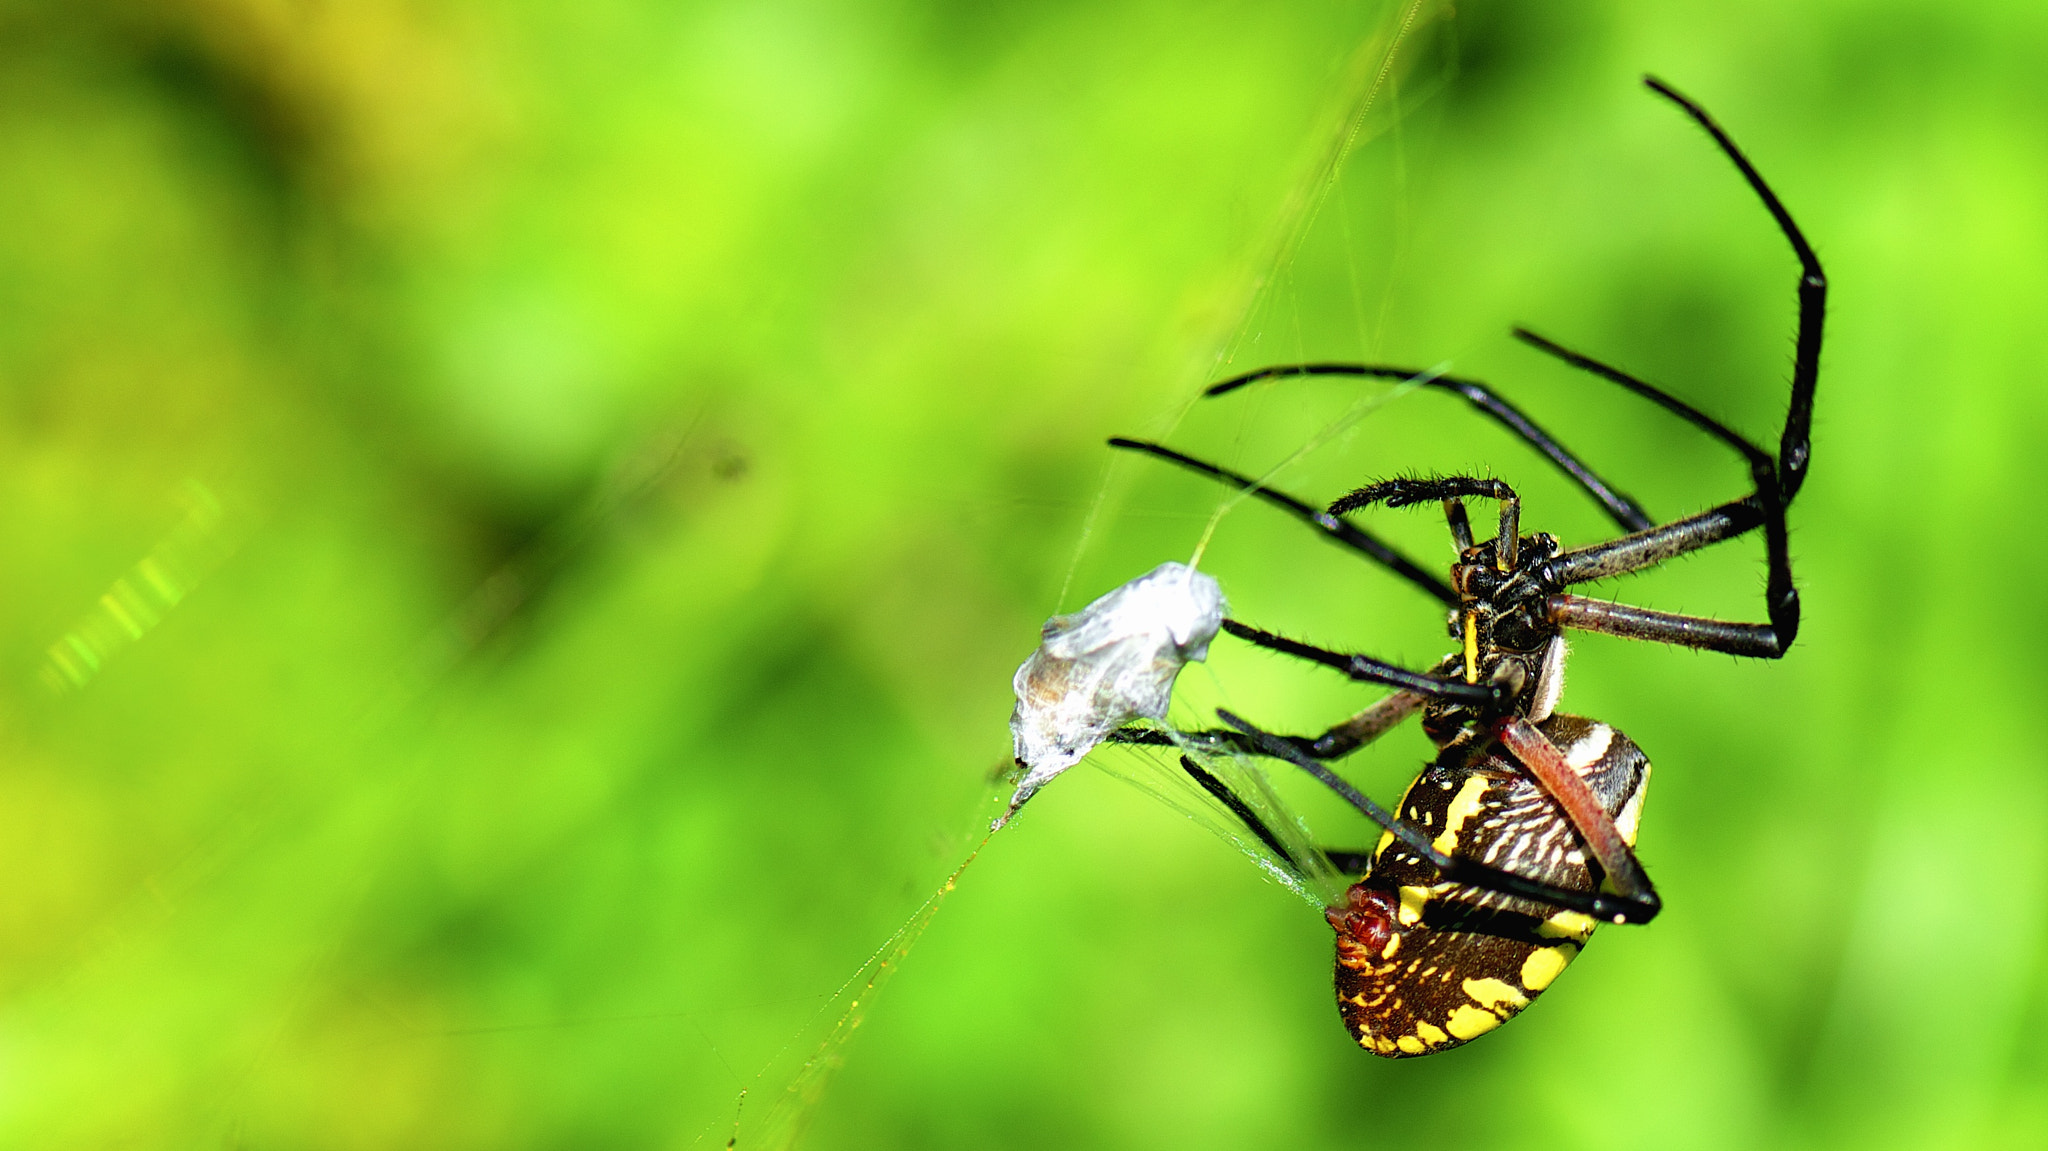 Photograph Orbit Spider by Danny Perez on 500px